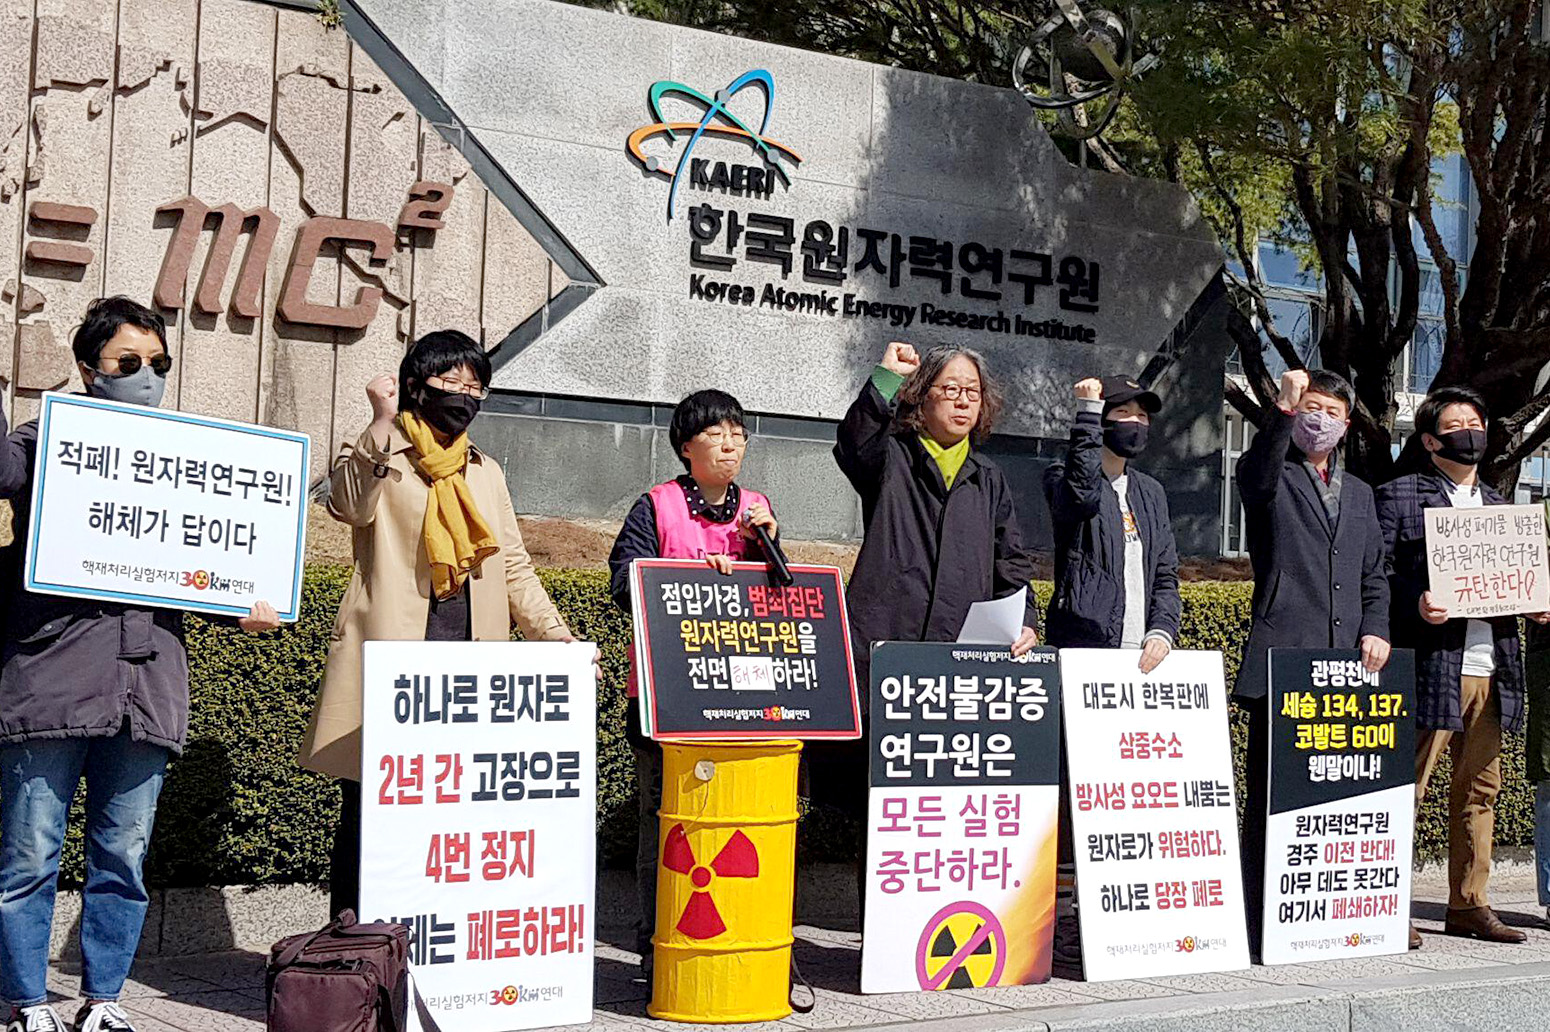 Anti-nuclear protestors call for the shutdown of the Korea Atomic Energy Research Institute in Daejeon, South Korea, on 20 March 2020. Credit: Newscom / Alamy Stock Photo. 2B84RWX